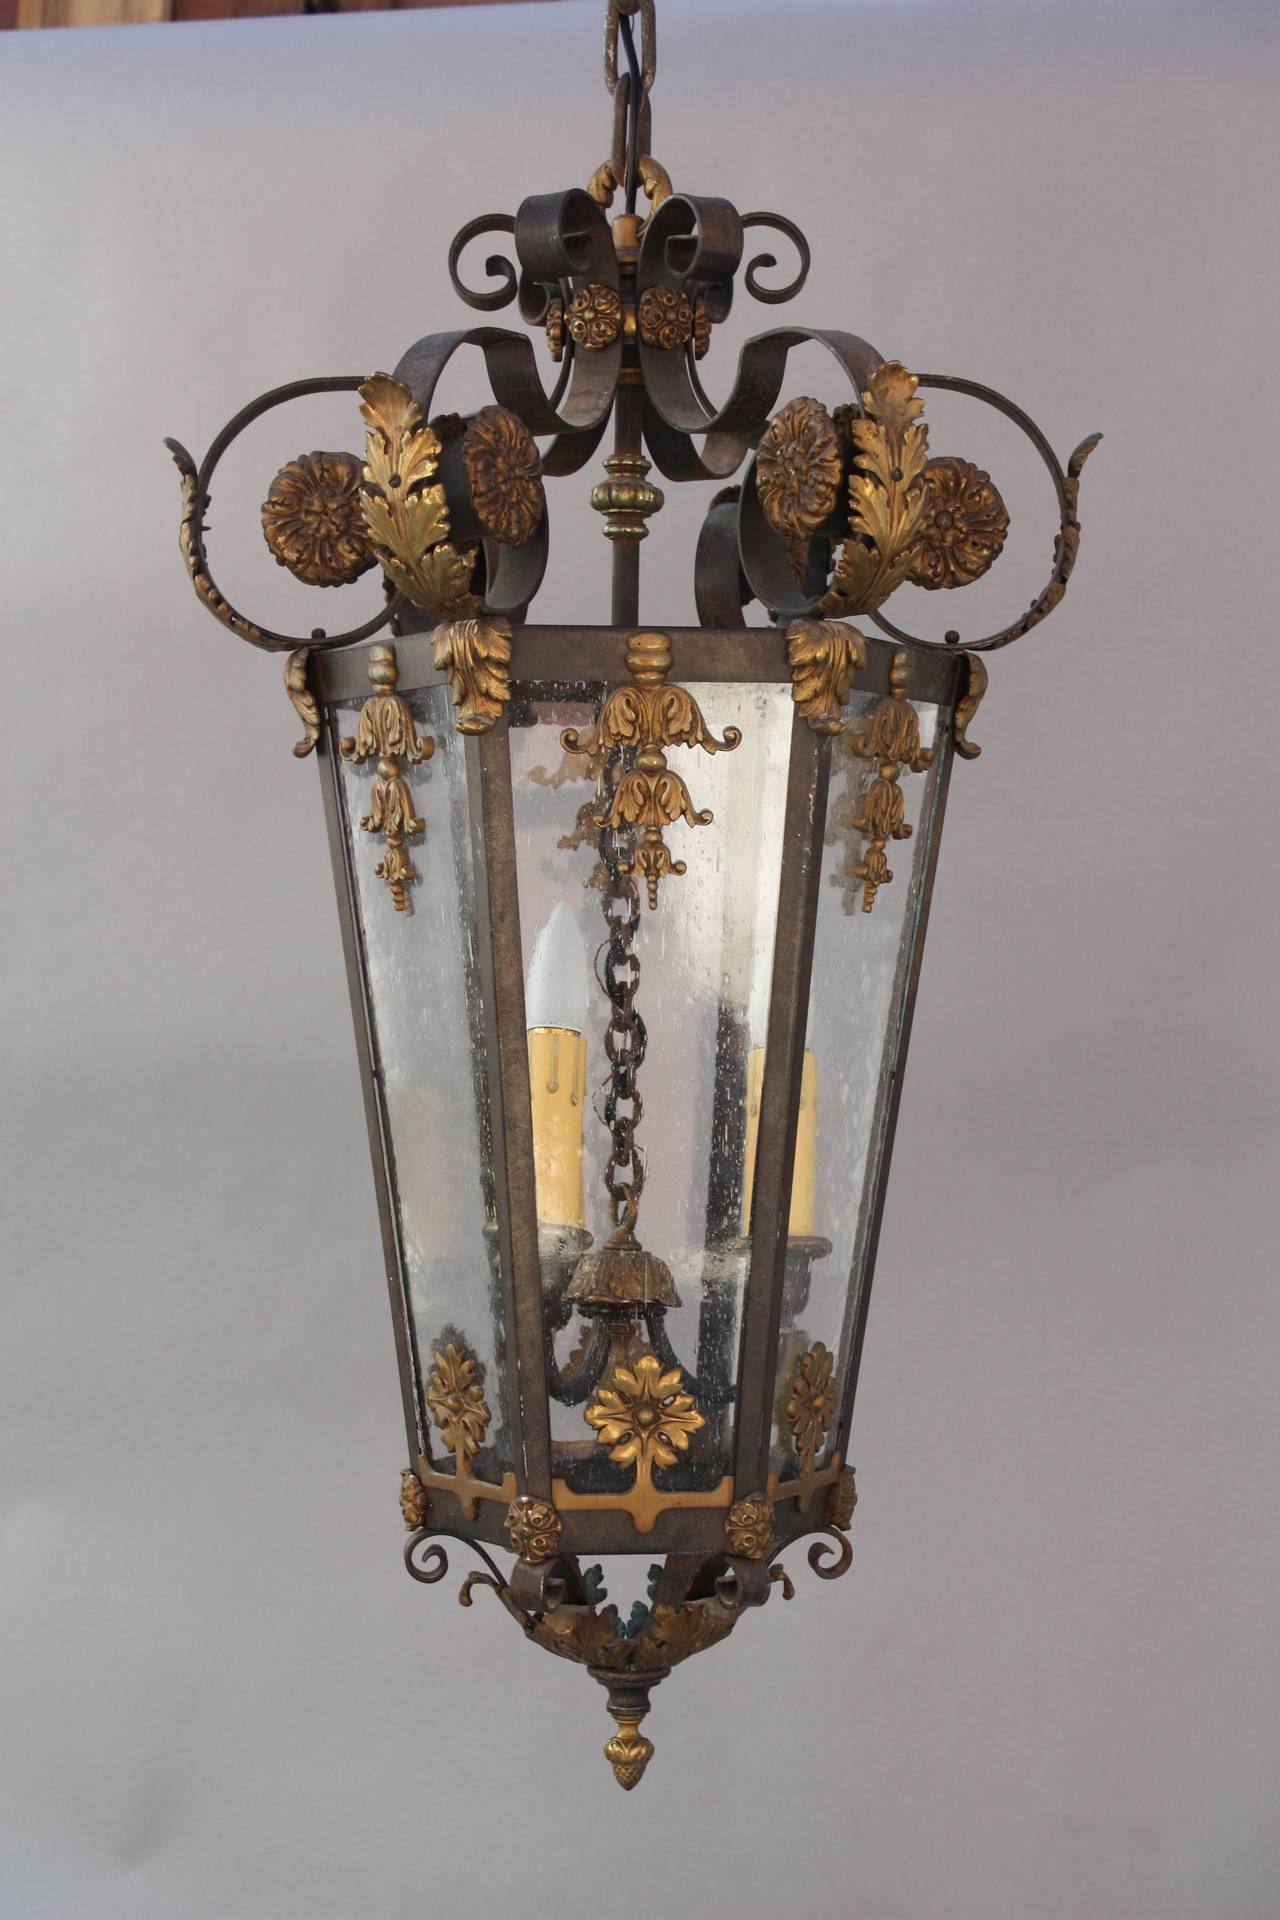 1920s Pendant Light Spanish Revival At 1stdibs